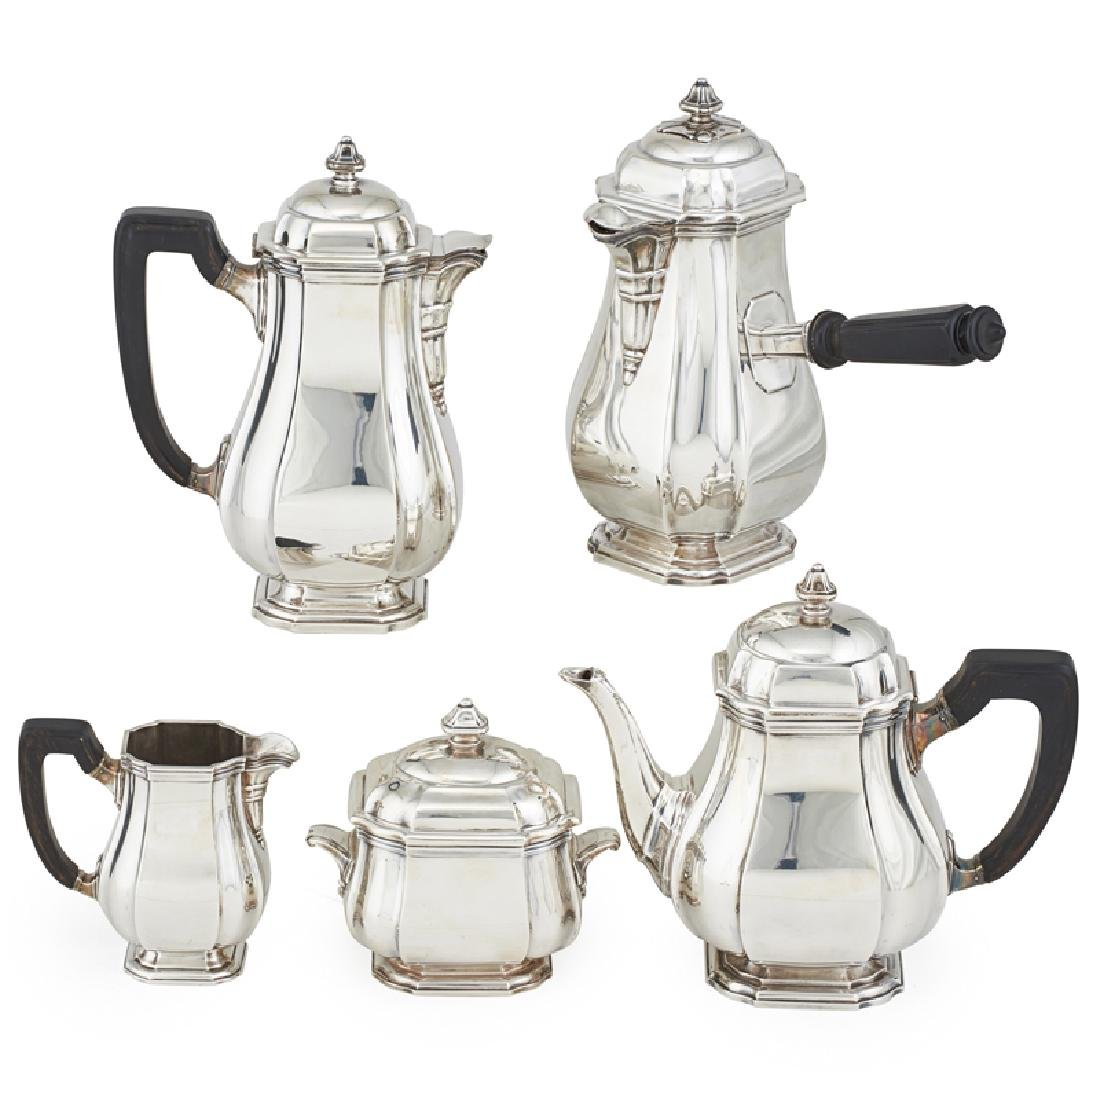 HENRI LAPPARRA STERLING SILVER TEA SET